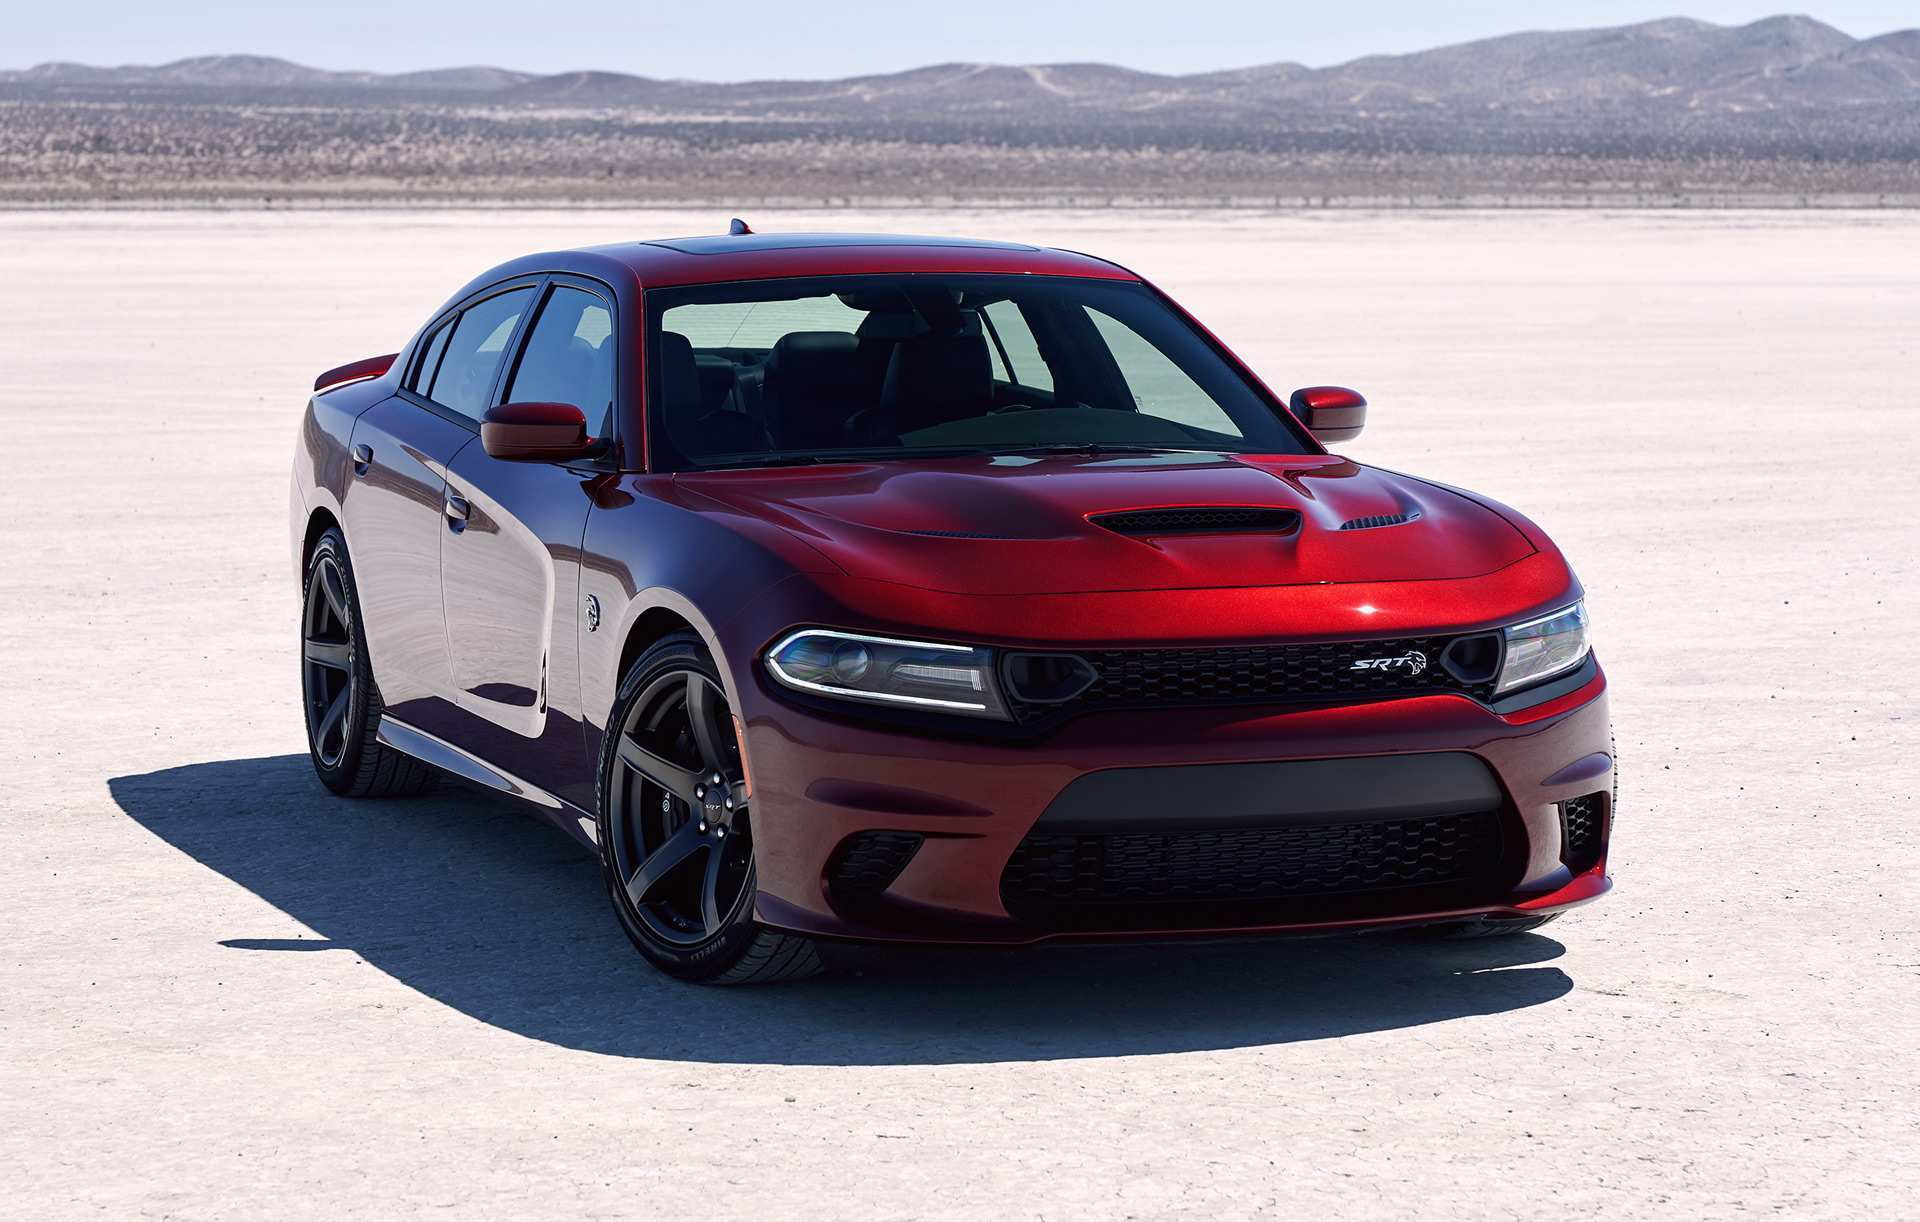 93 All New 2019 Dodge Challenger Hellcat Price And Release Date